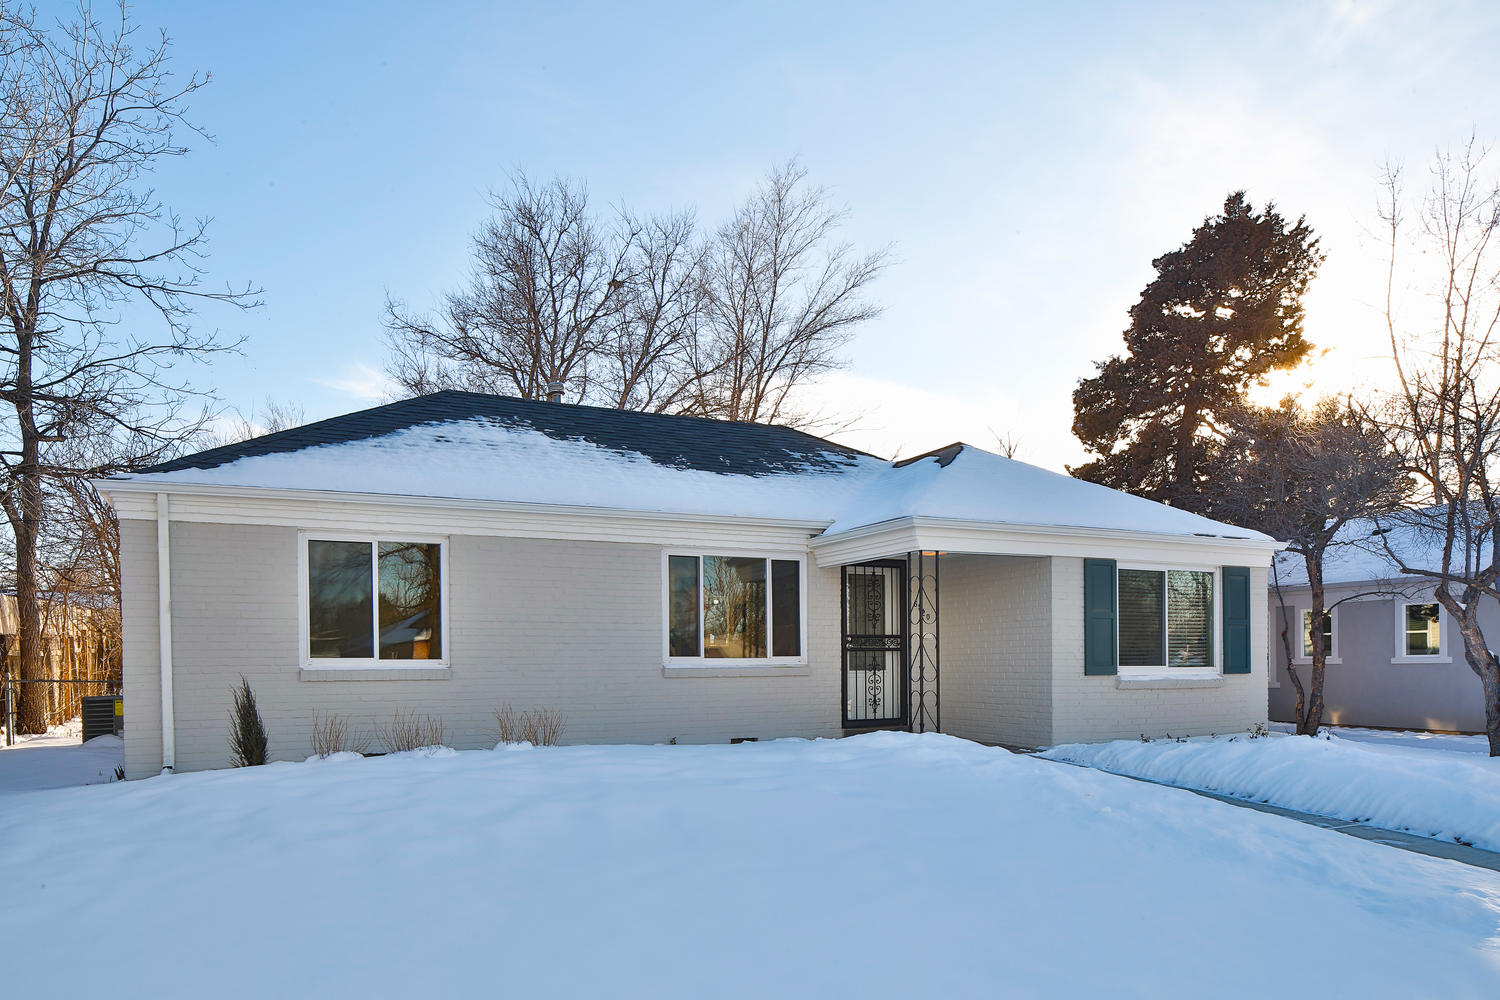 Single Family Home for Sale at Sophisticated Renovation Great Style and Taste 6920 East 5th Avenue Denver, Colorado 80220 United States